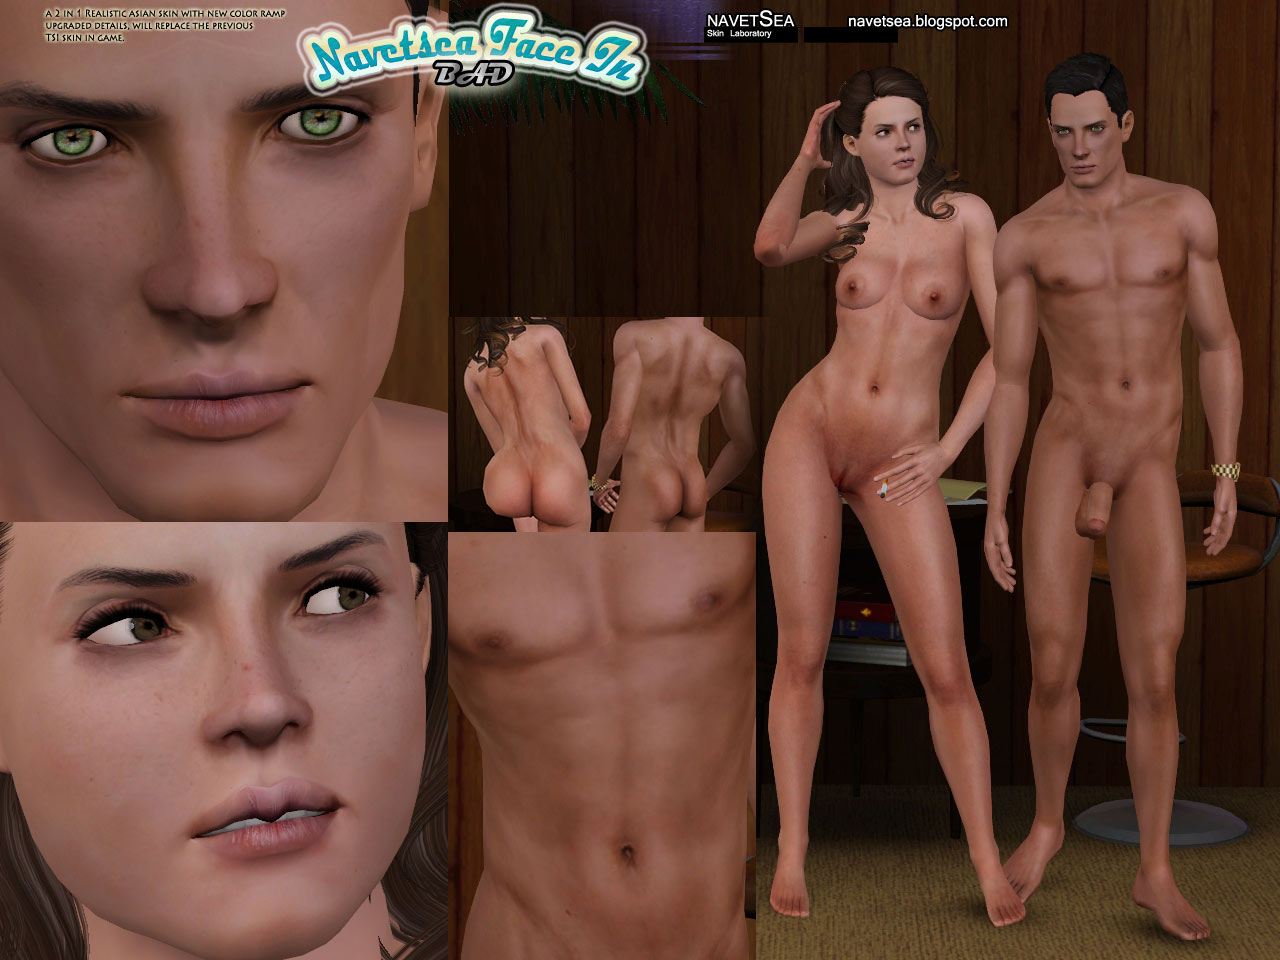 Sims 2 pc naked cheats porn gallery